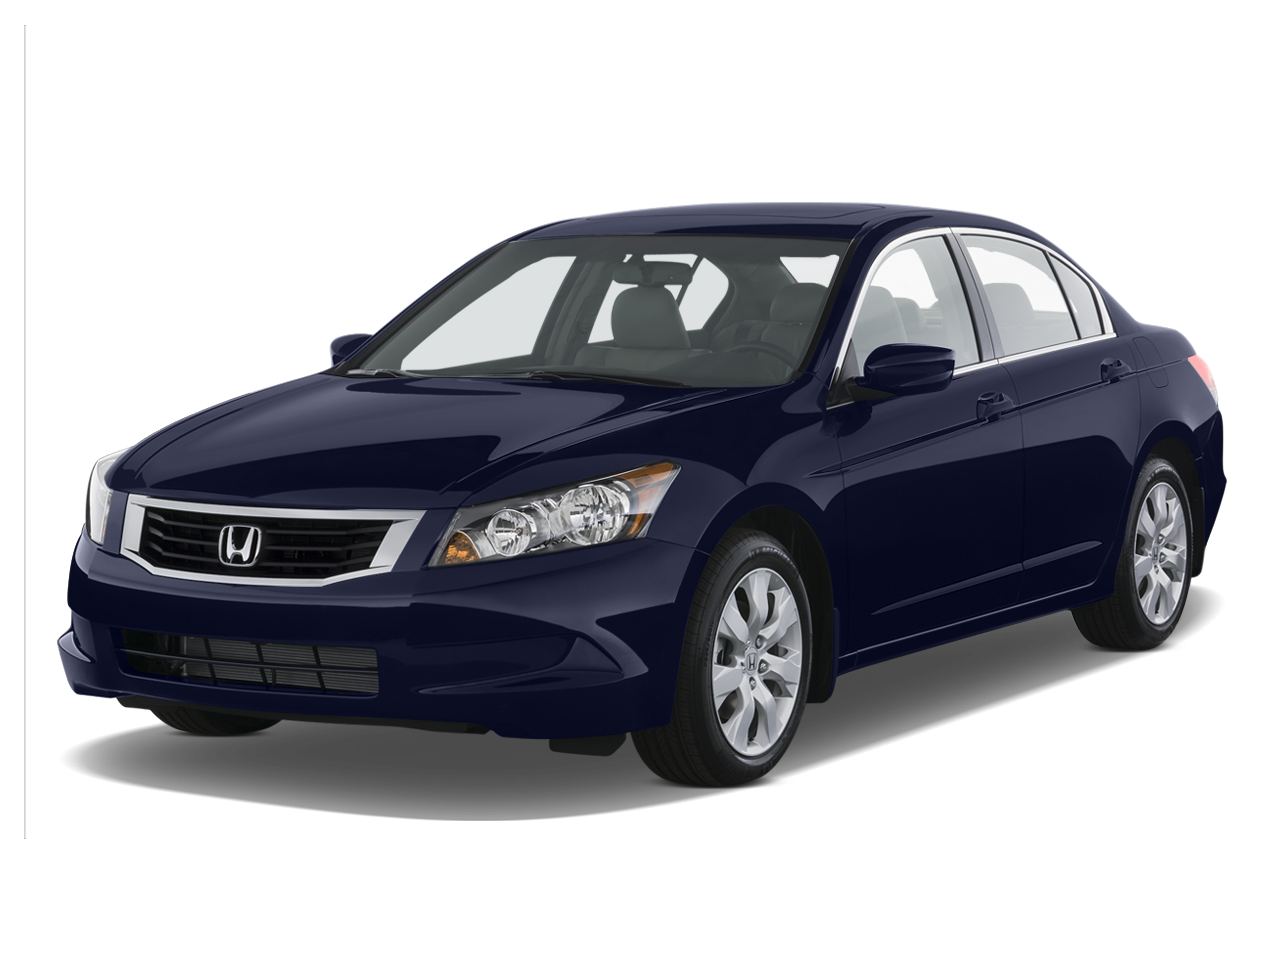 2008 Honda Accord Coupe And Sedan Latest News Features And Auto Show Coverage Automobile